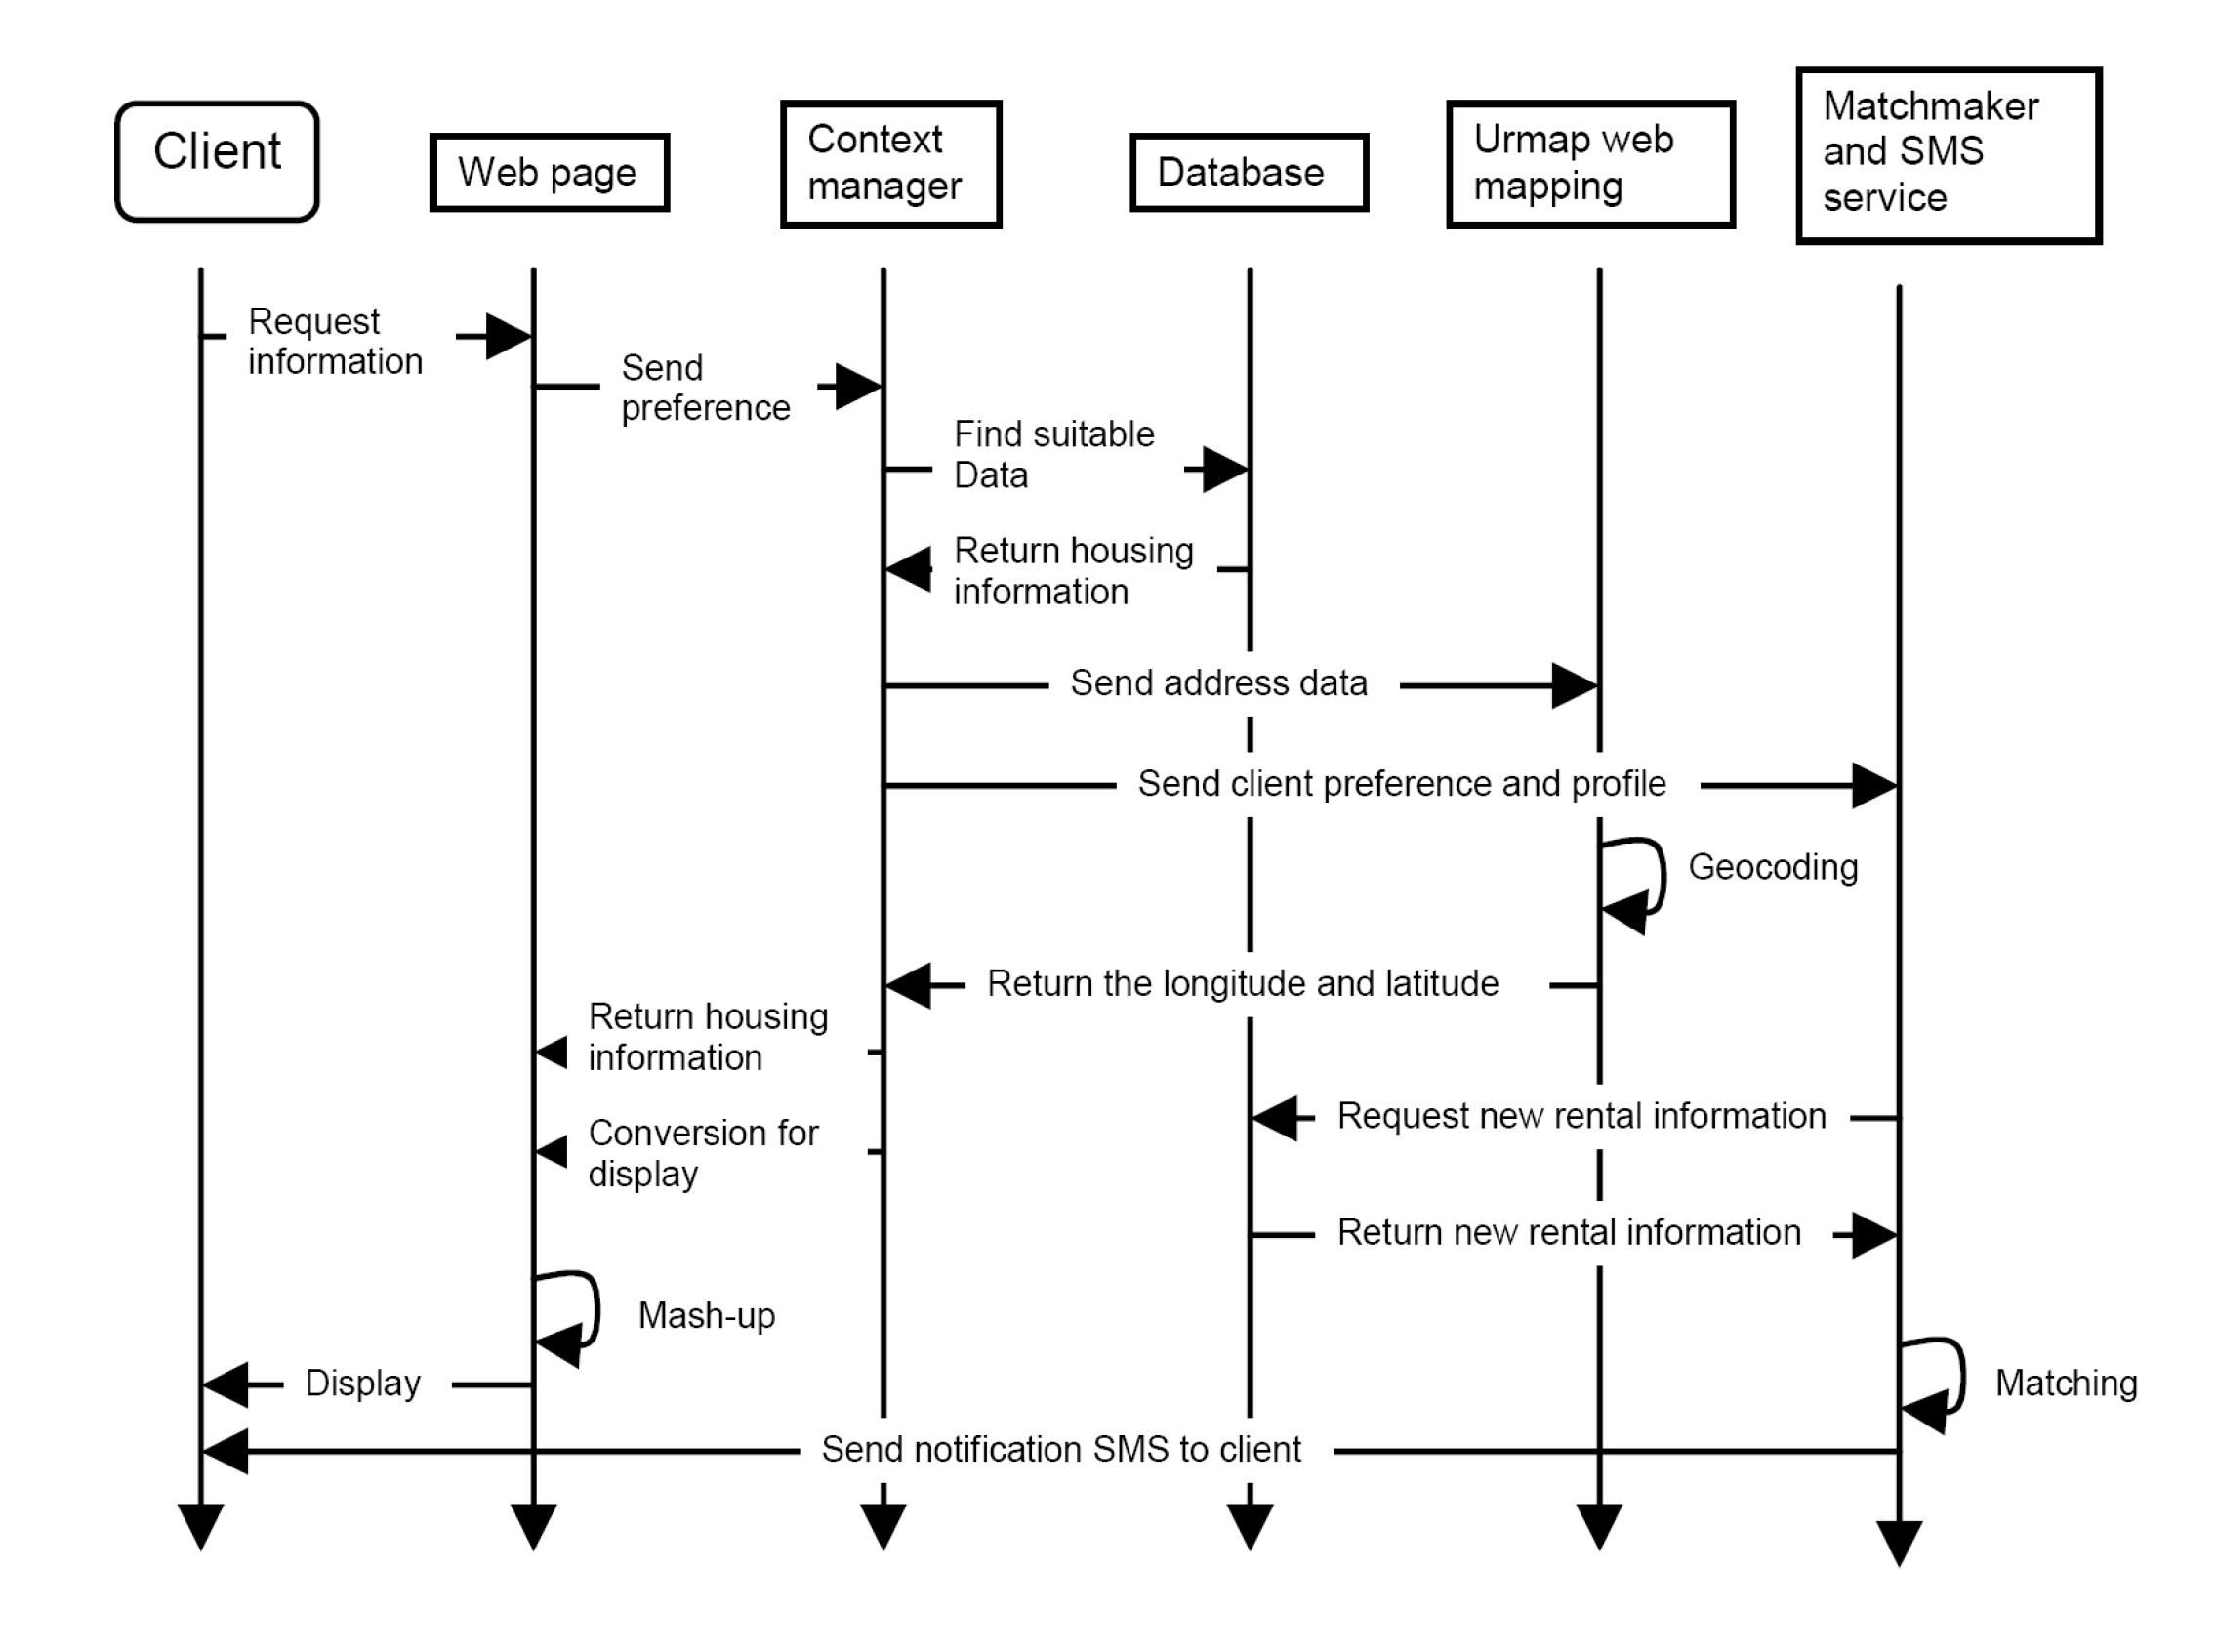 action science approach to nonprofit housing services using web    sequence diagram showing the interactions between system components along the axis of time